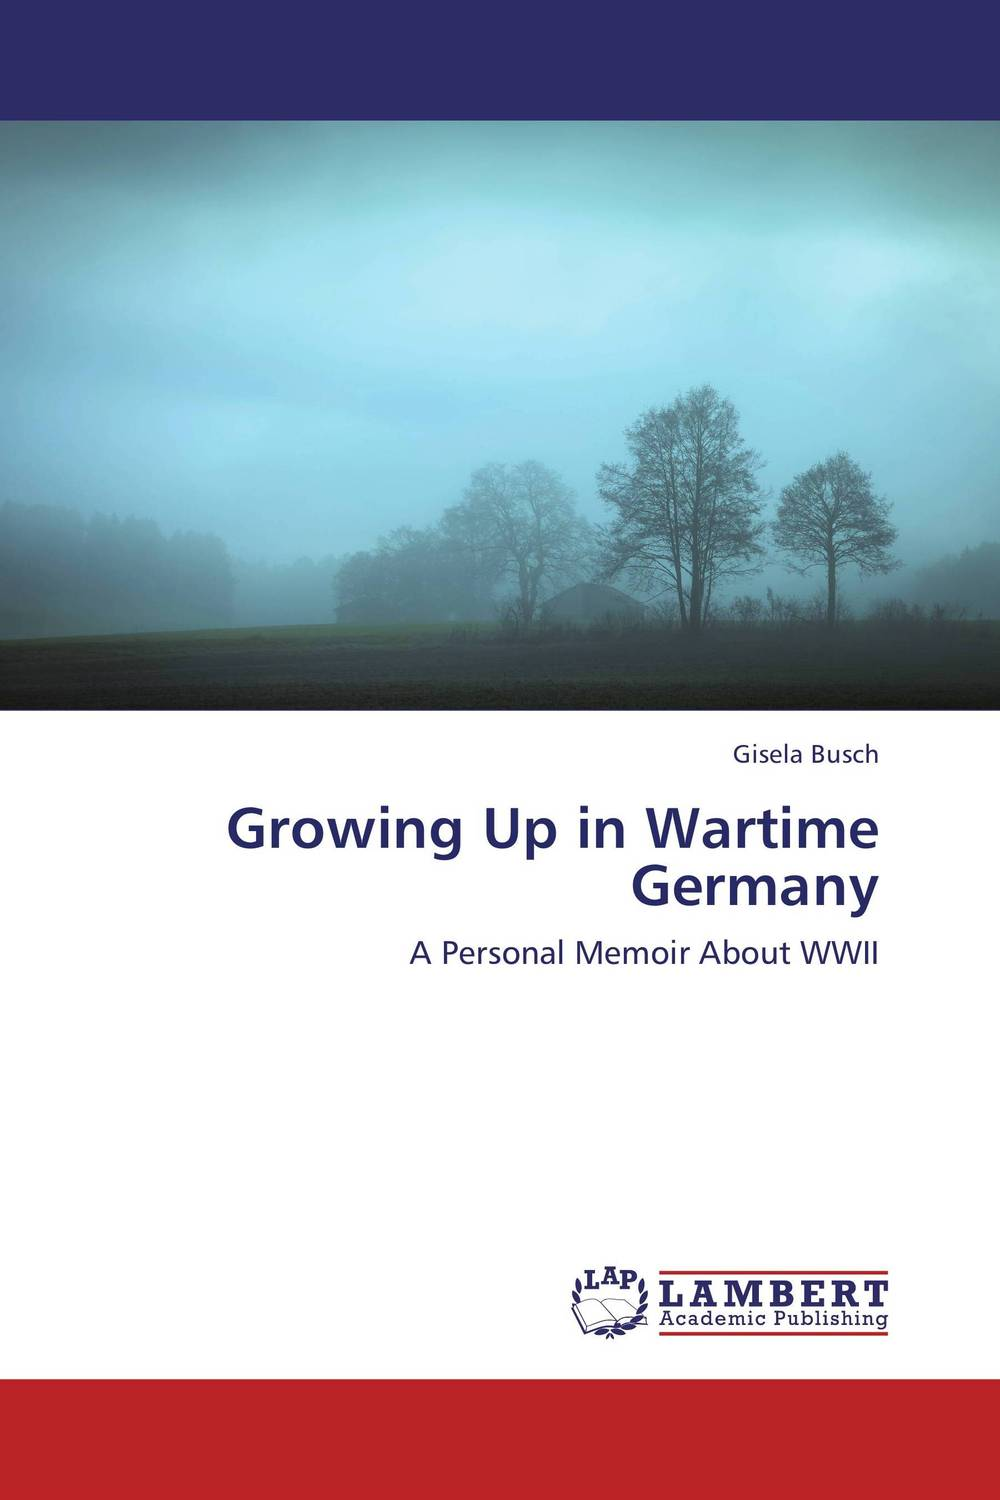 Growing Up in Wartime Germany paula mclain like family growing up in other people s houses a memoir